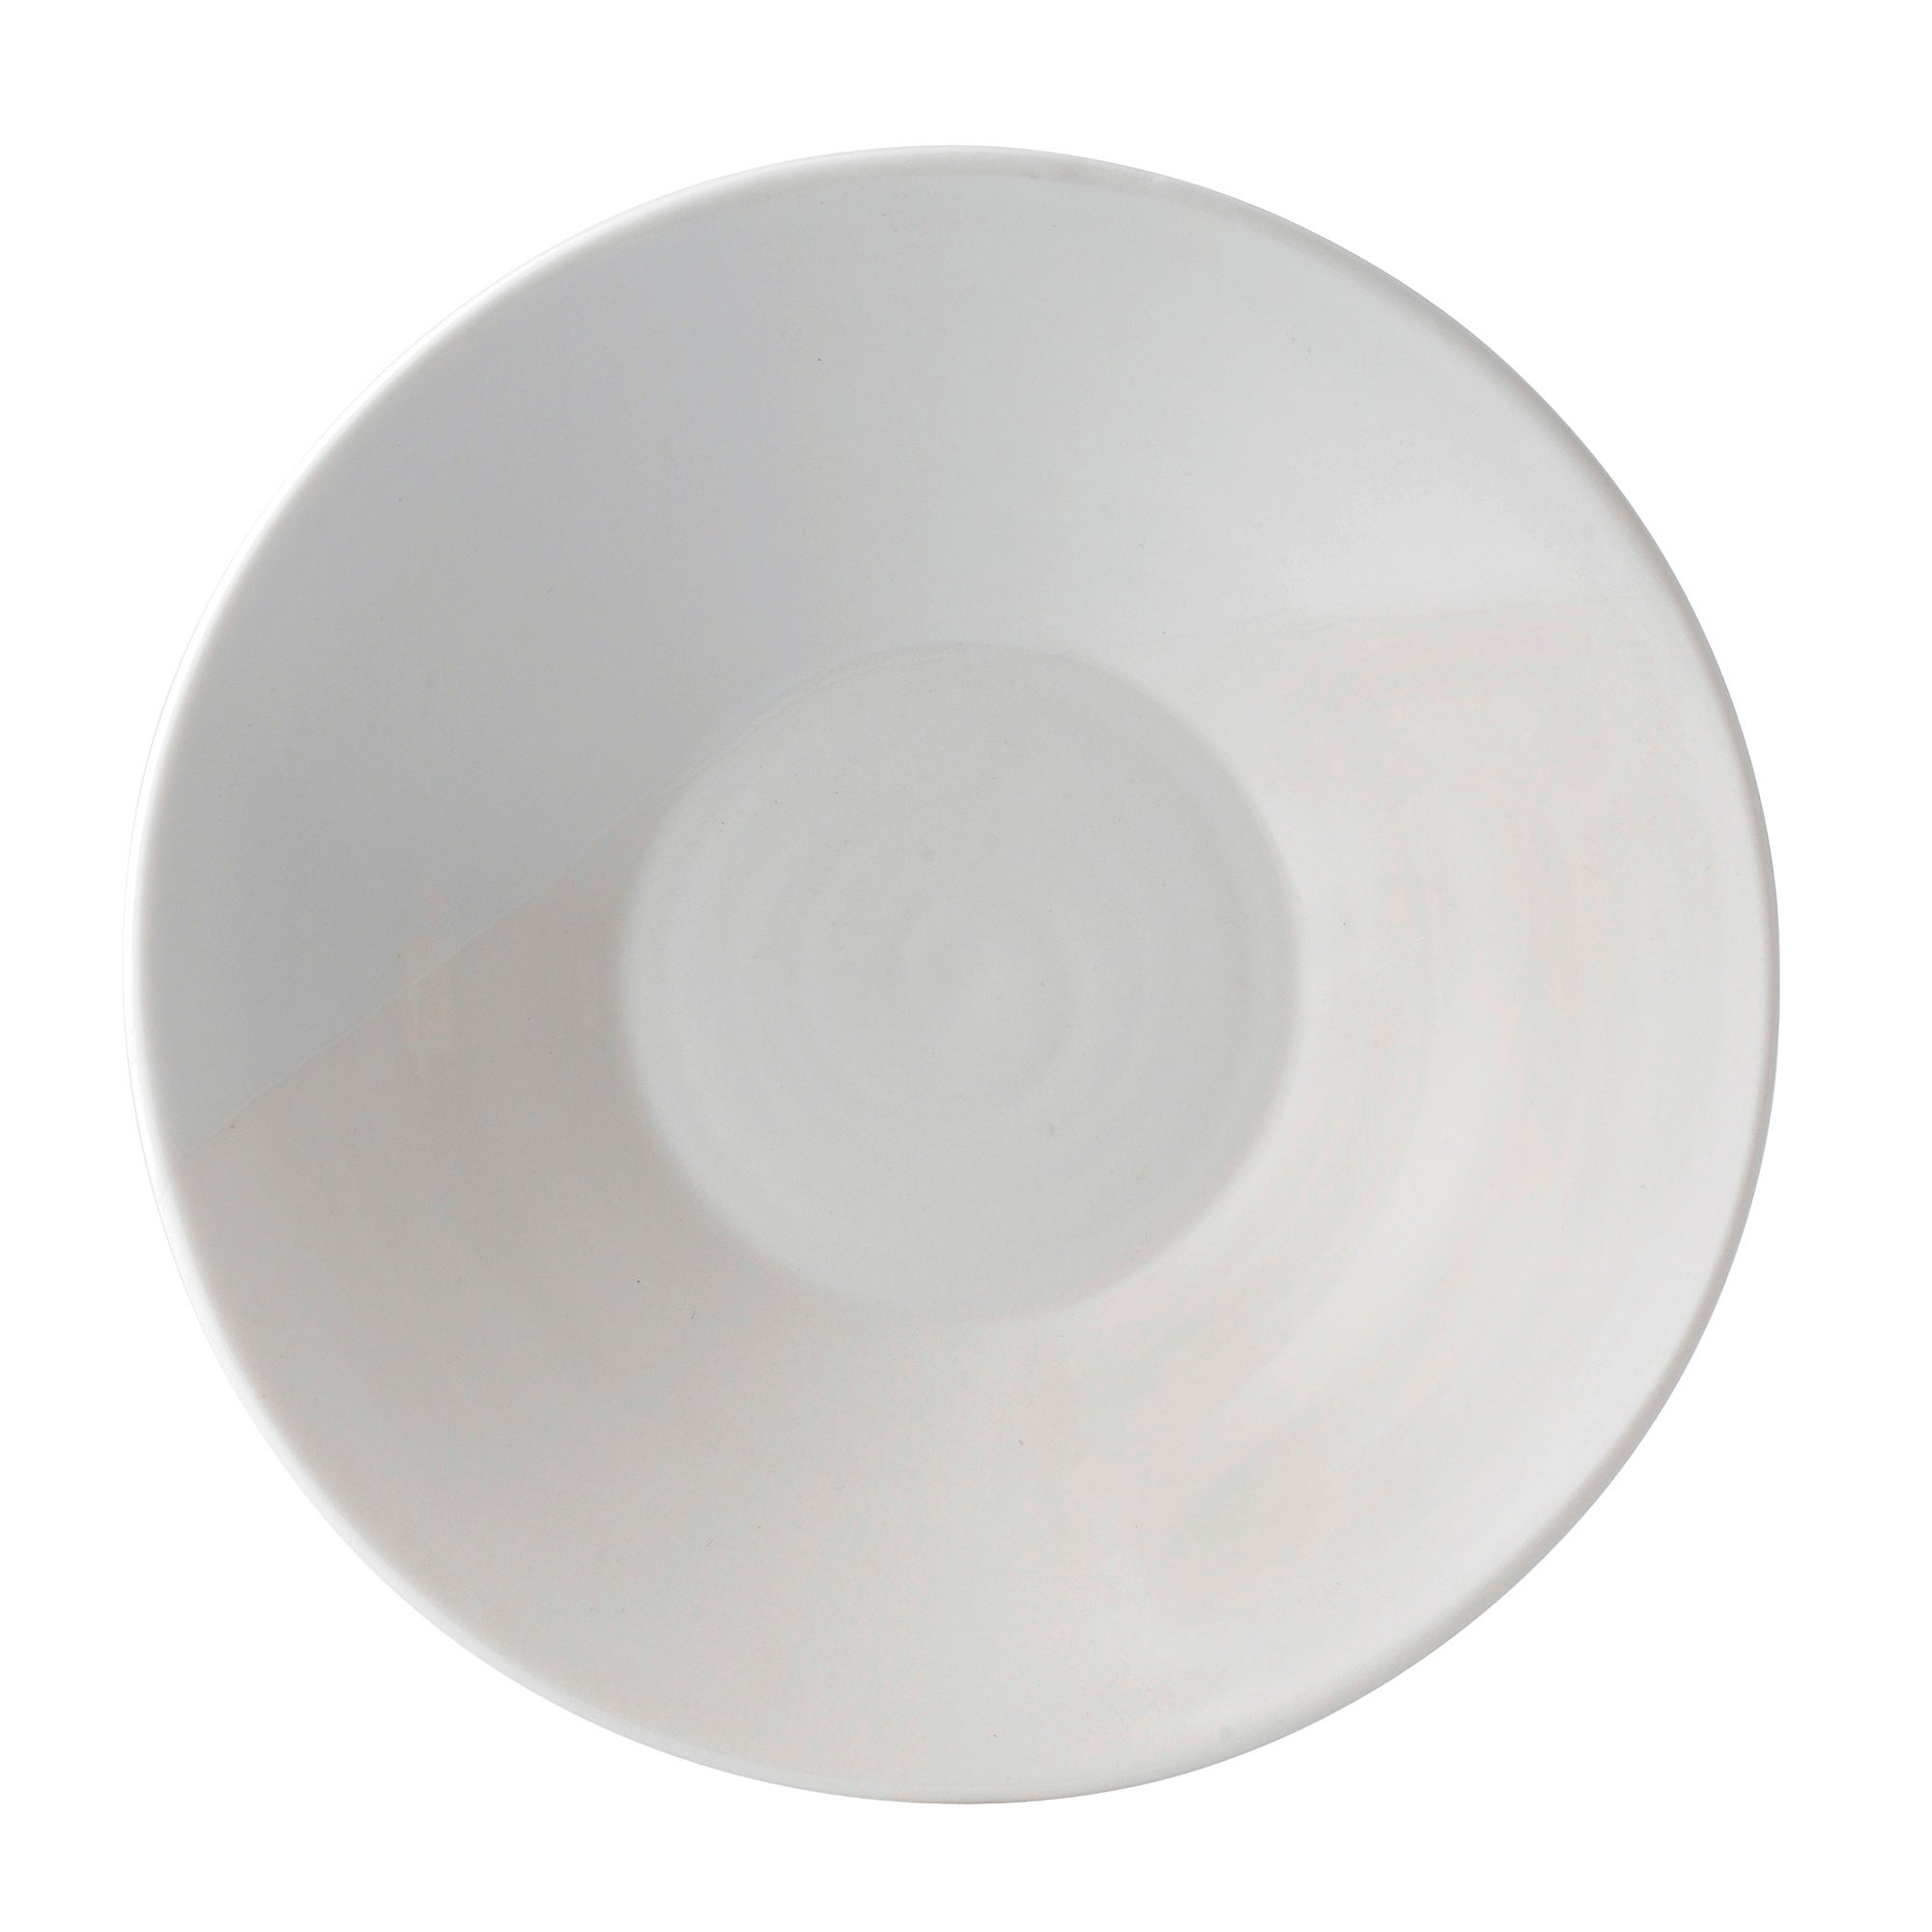 Royal Doulton White 1815 Collection Saucer